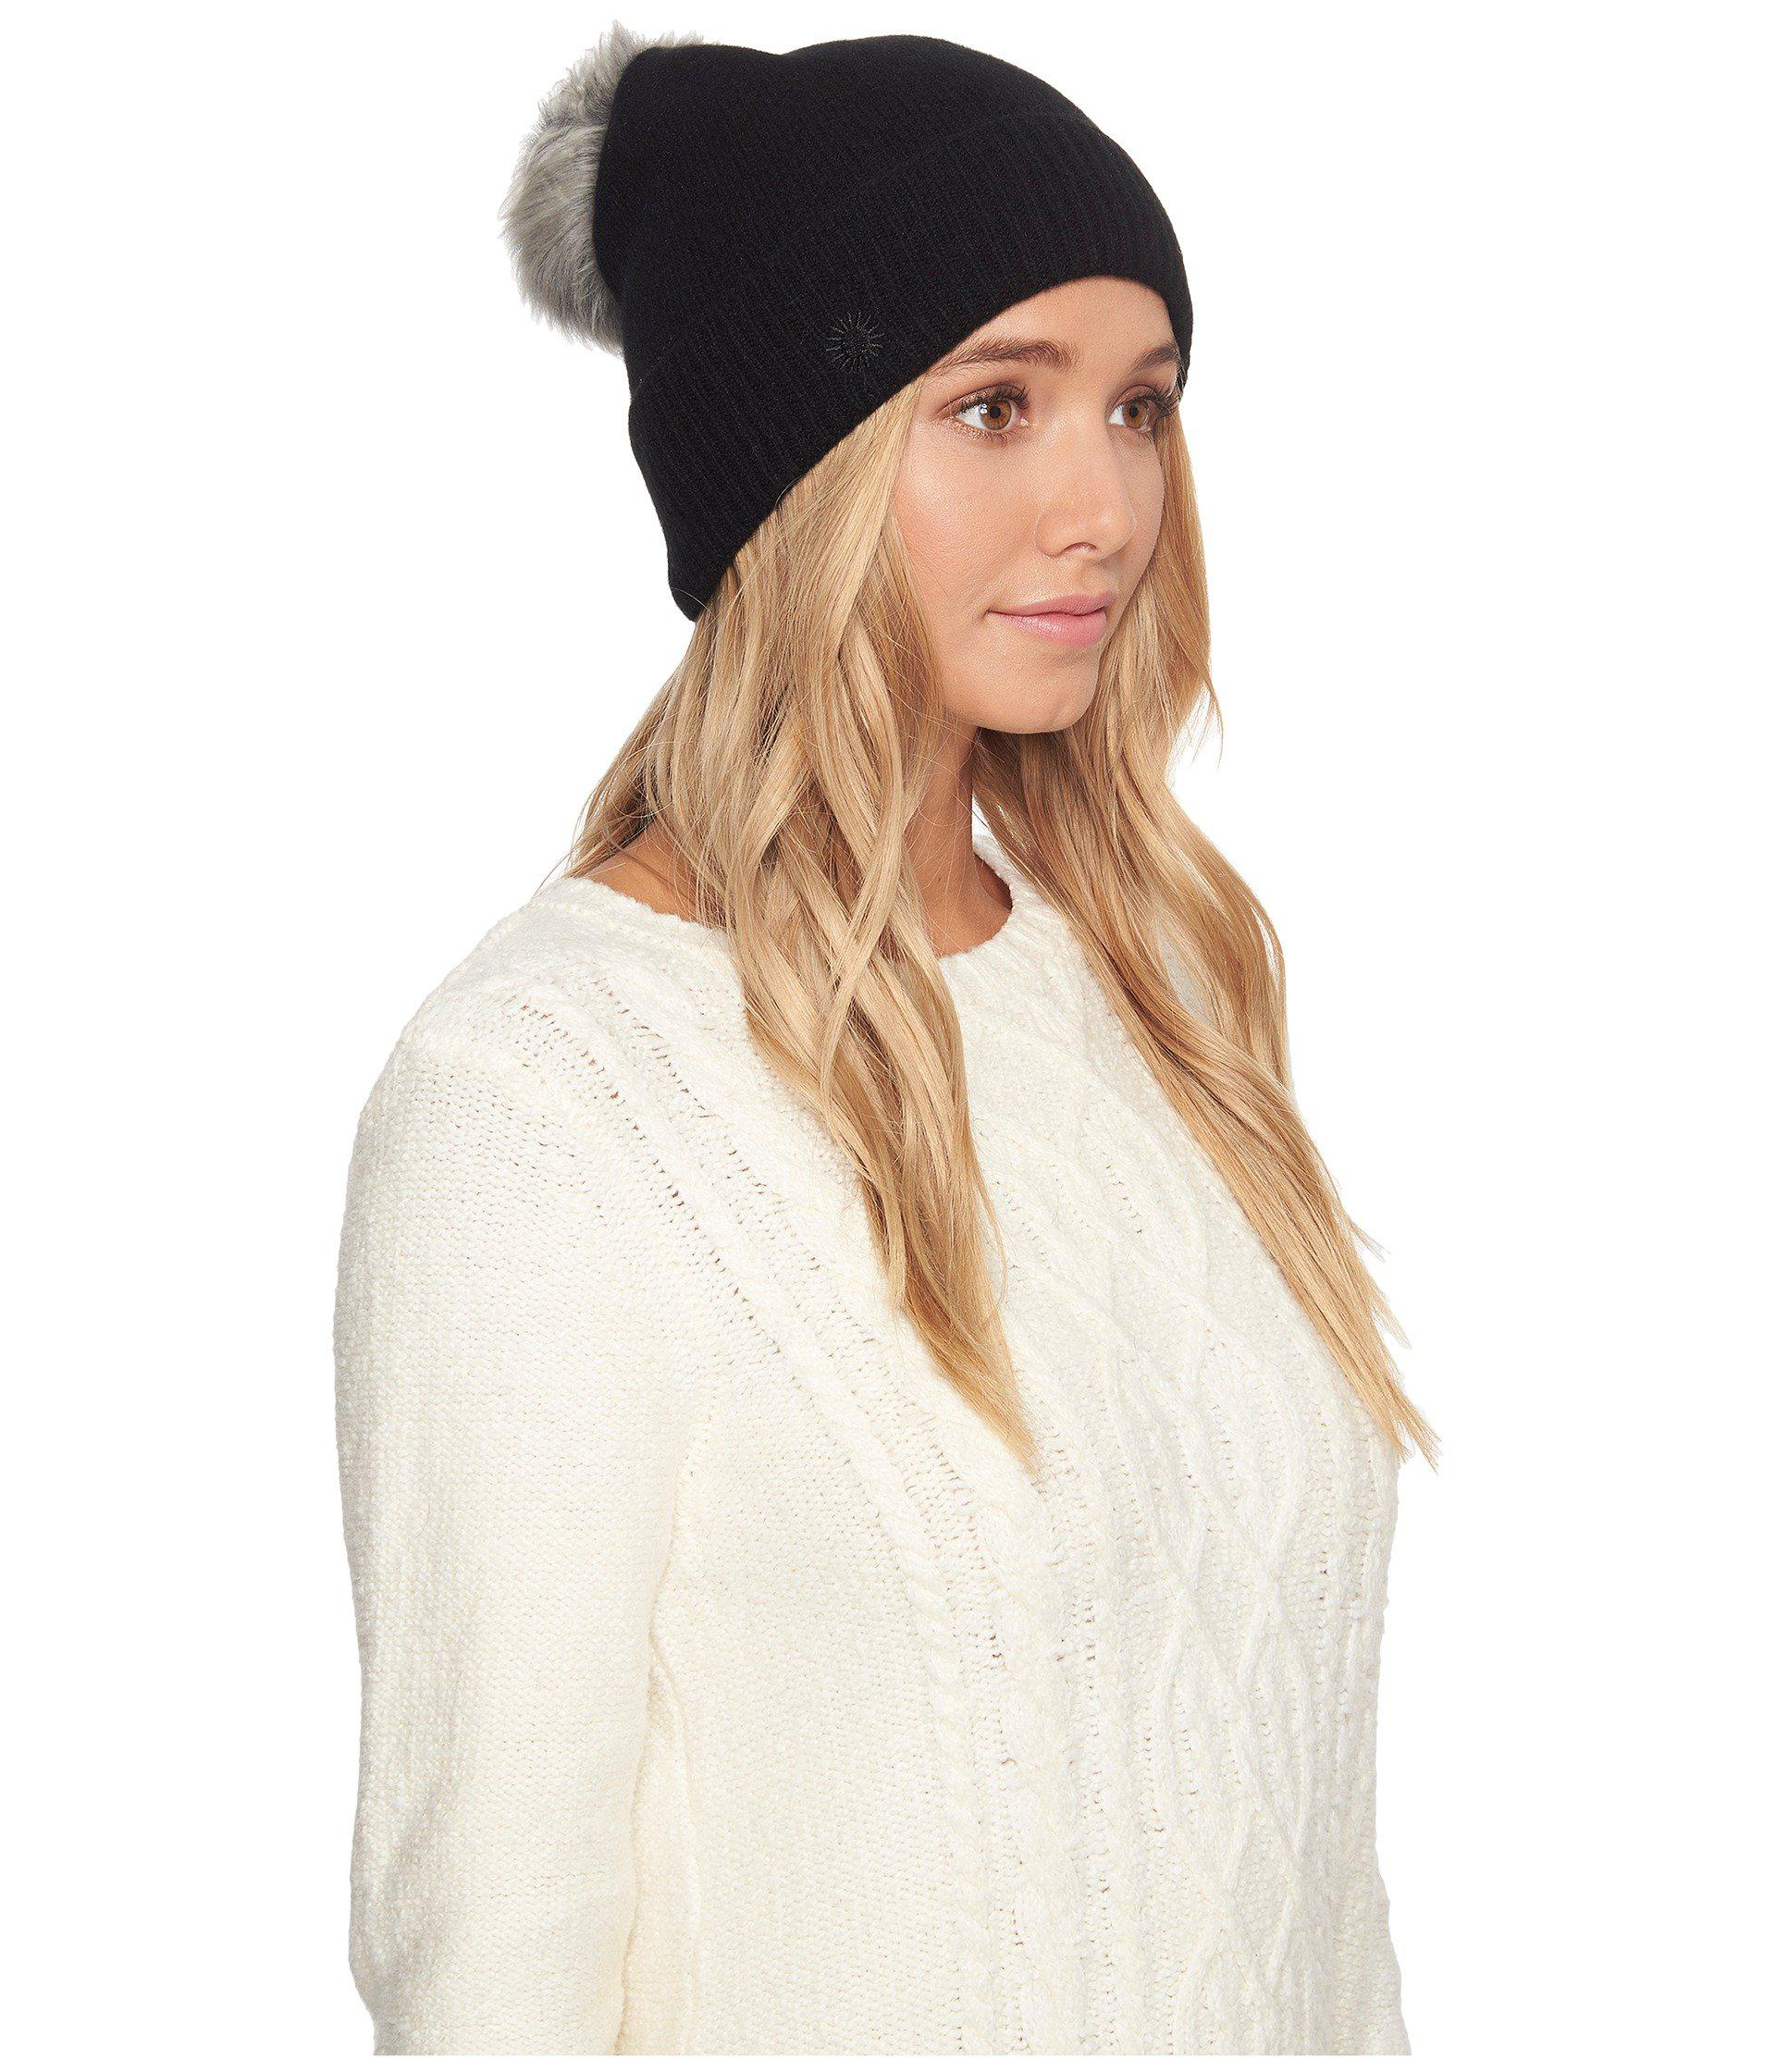 c5dc812e2a008 UGG Luxe Cuff Hat W  Oversized Toscana Pom in Black - Lyst